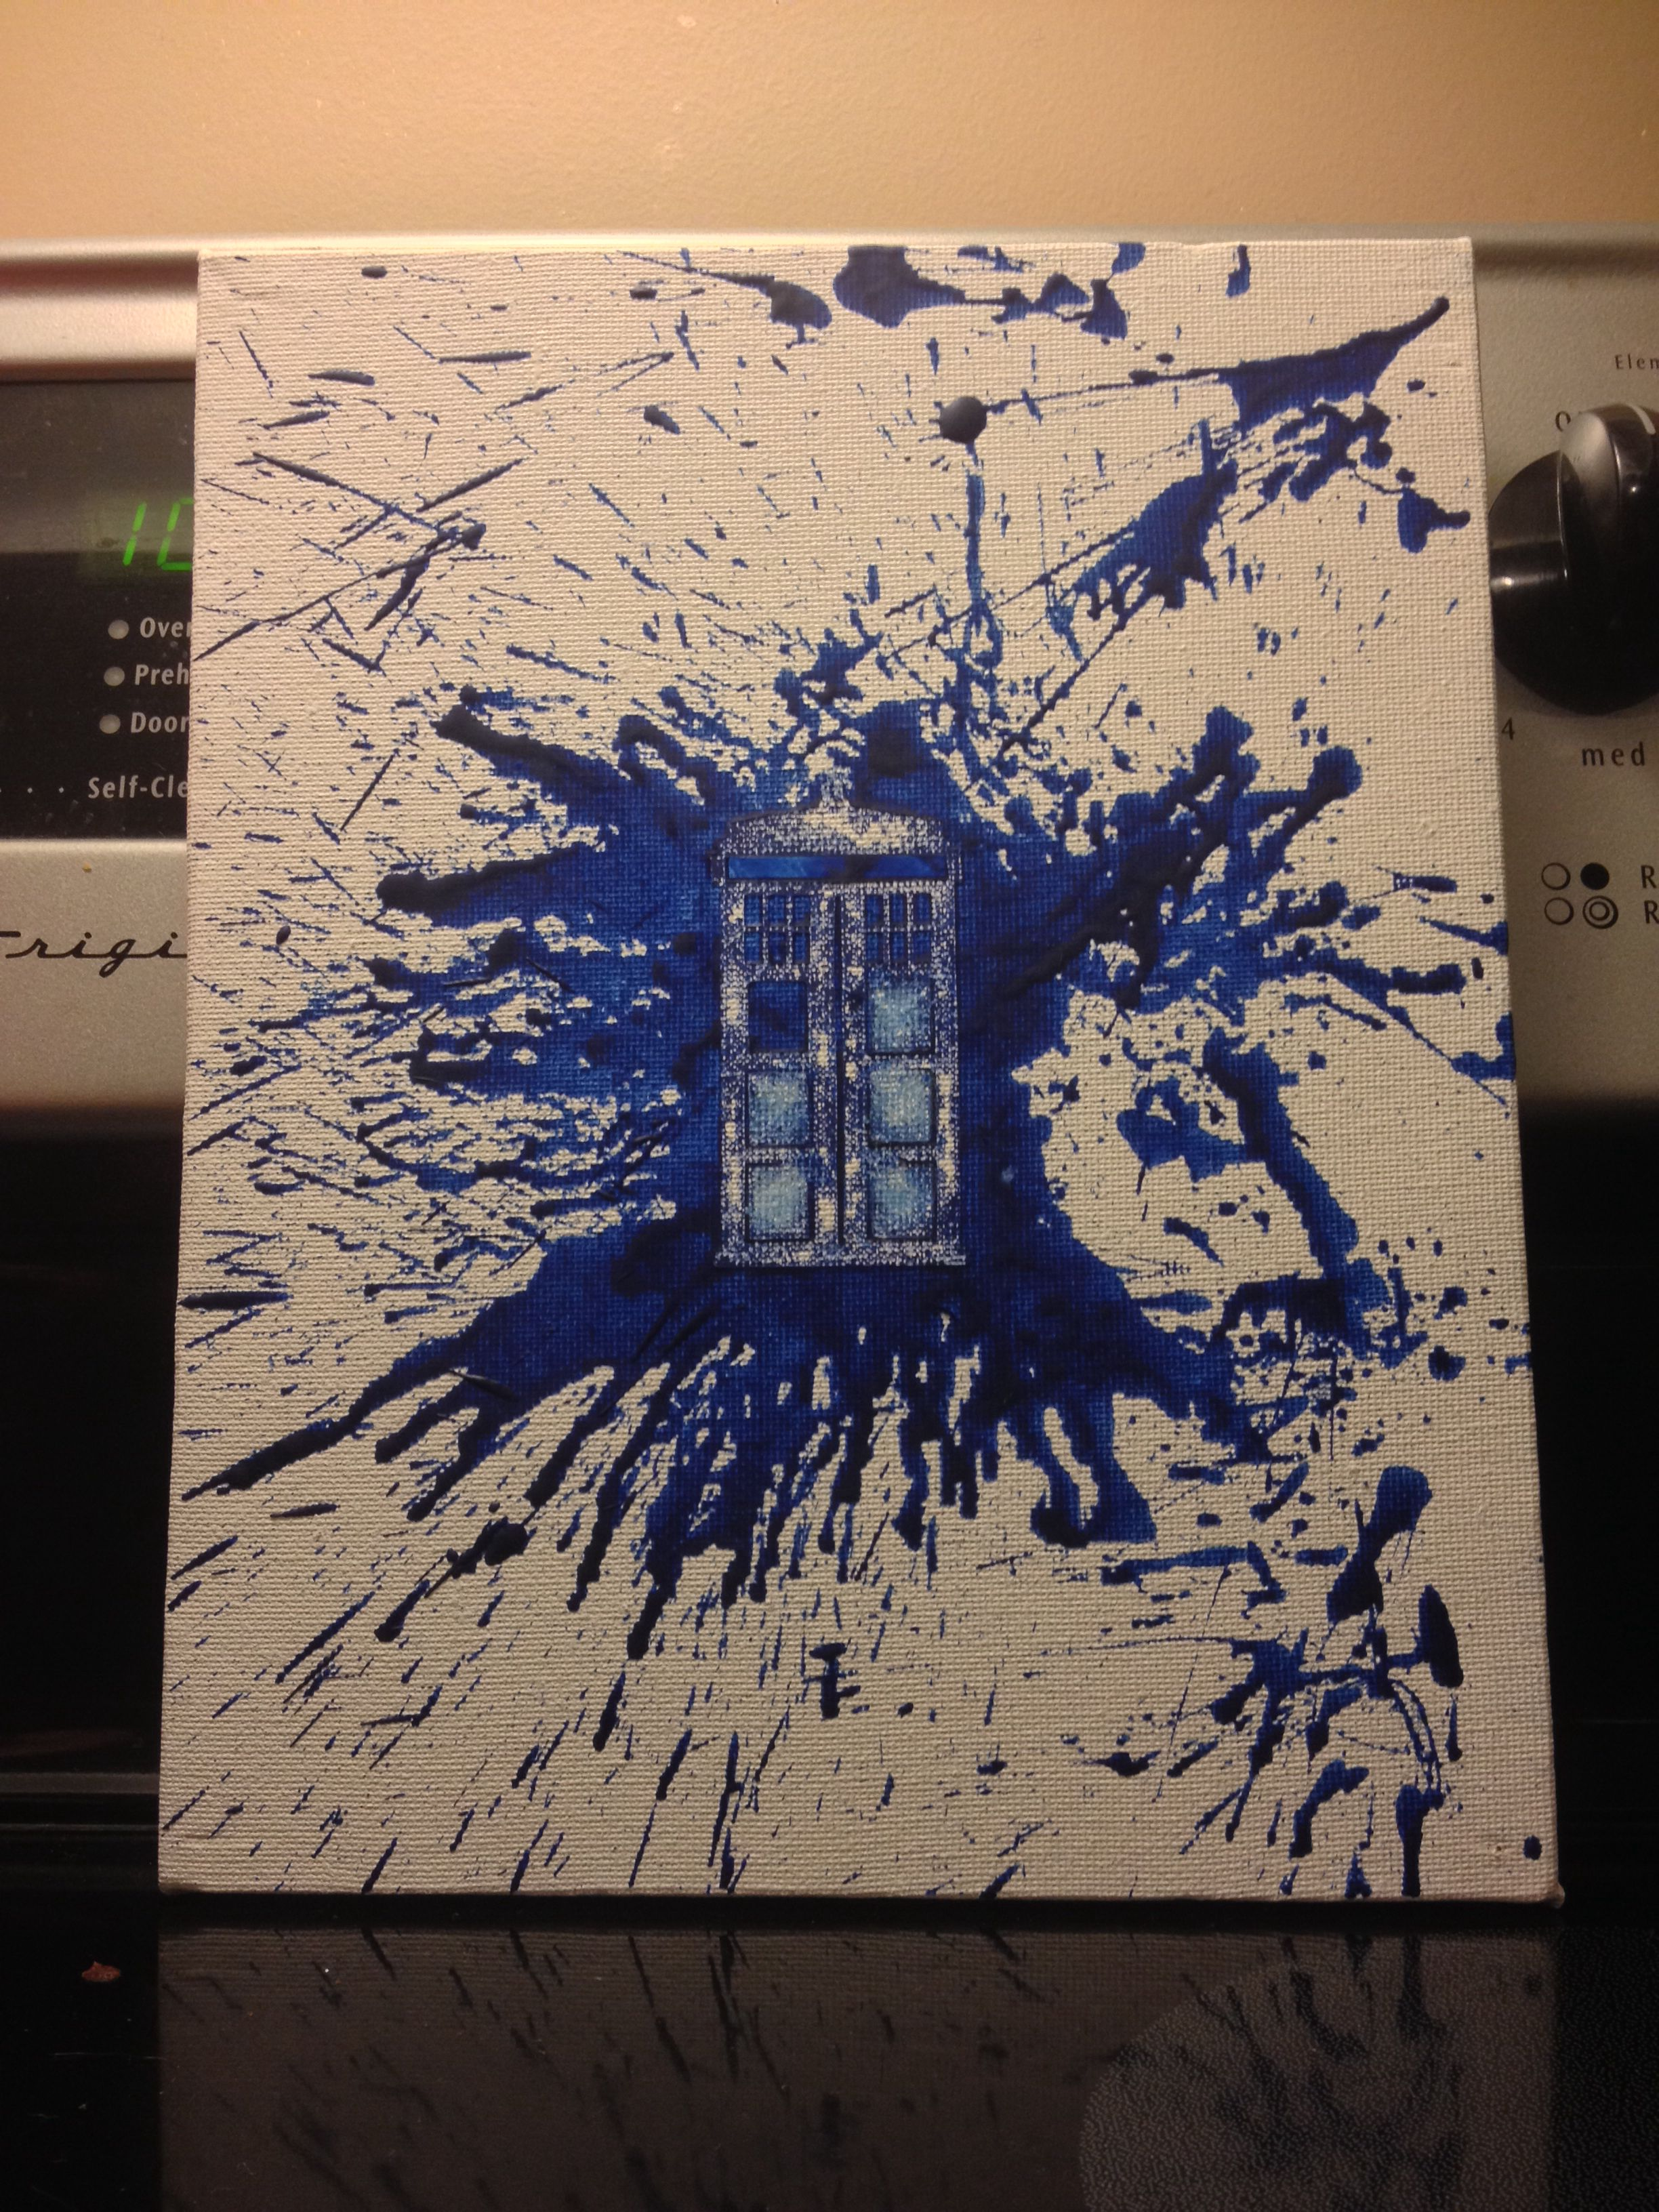 made this tardis doctor who crayon art on a canvas just get a vinyl decal stick it on your. Black Bedroom Furniture Sets. Home Design Ideas